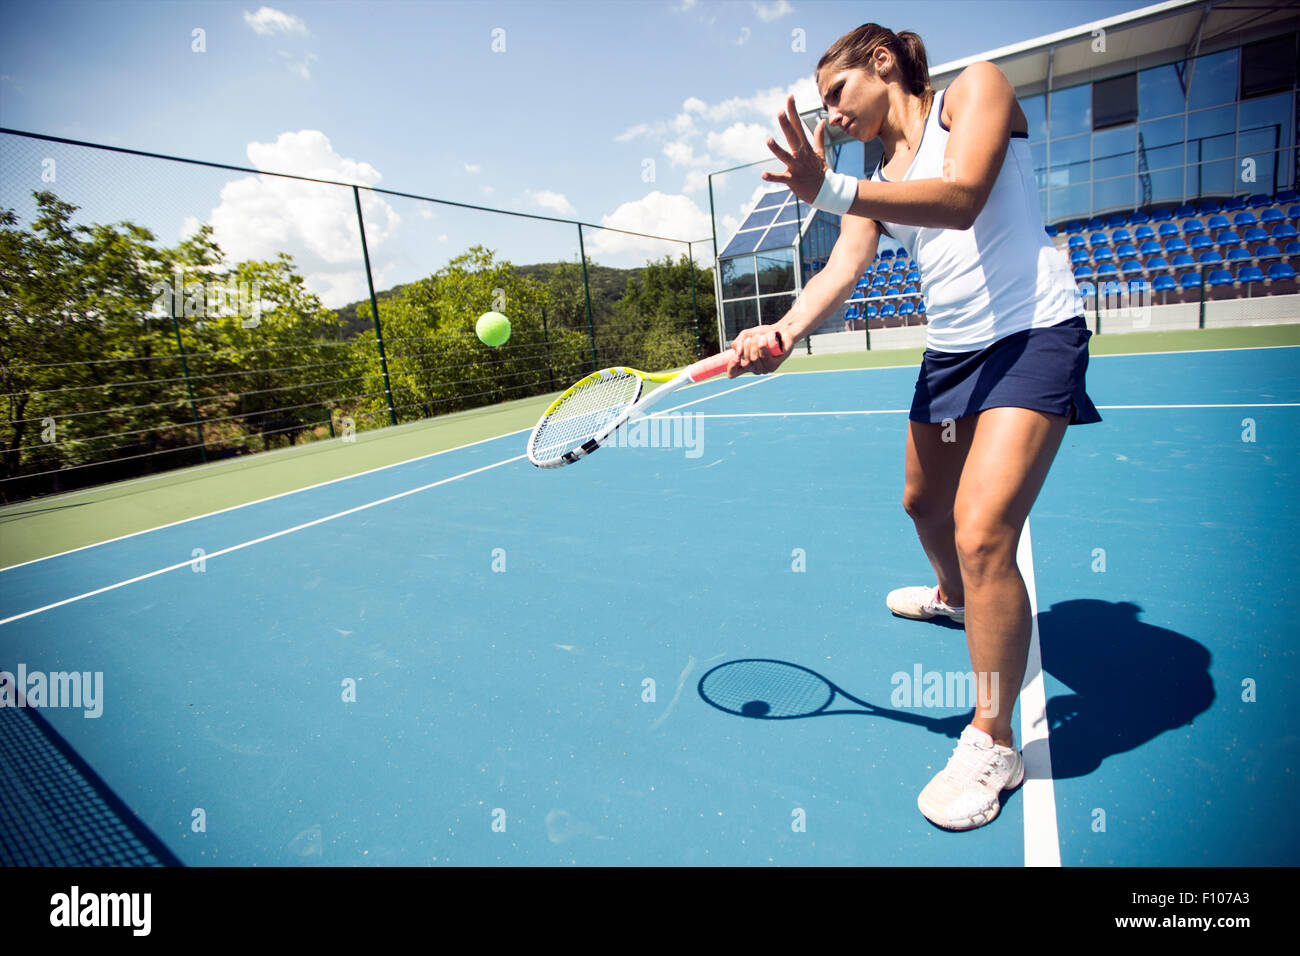 Tennis player effectuant un drop shot sur une belle cour bleu Photo Stock